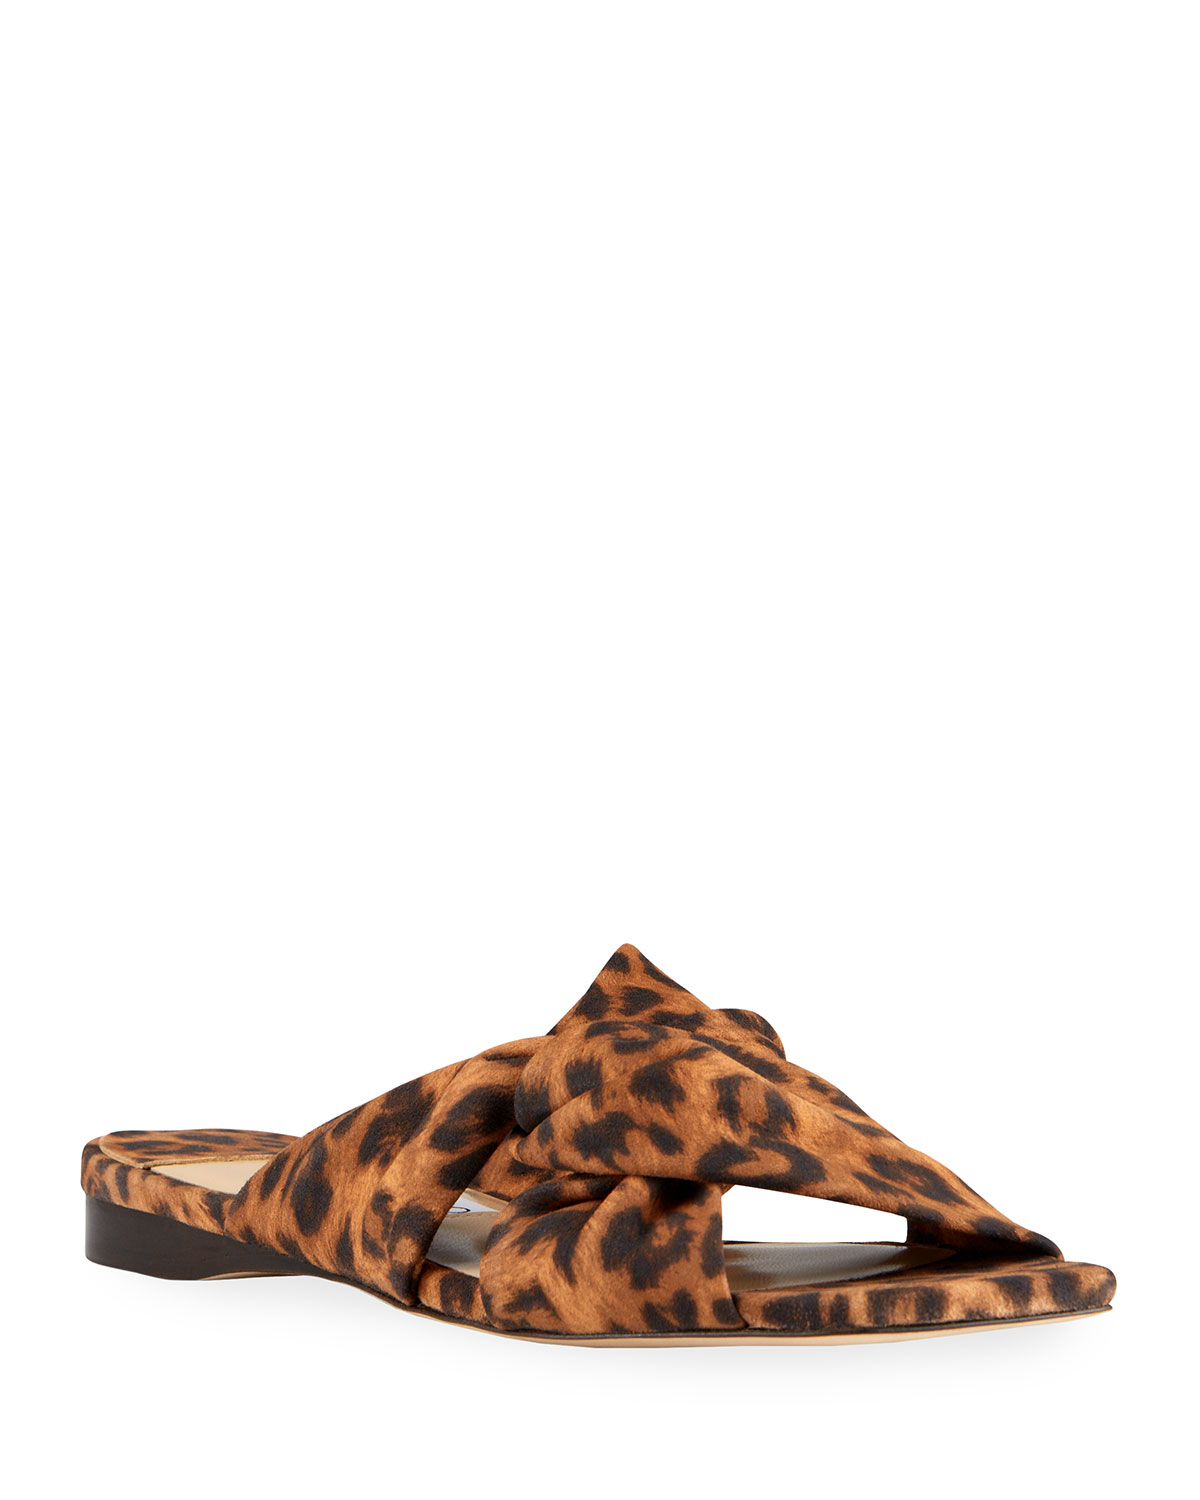 Narisa Knotted Leopard-Print Flat Sandals